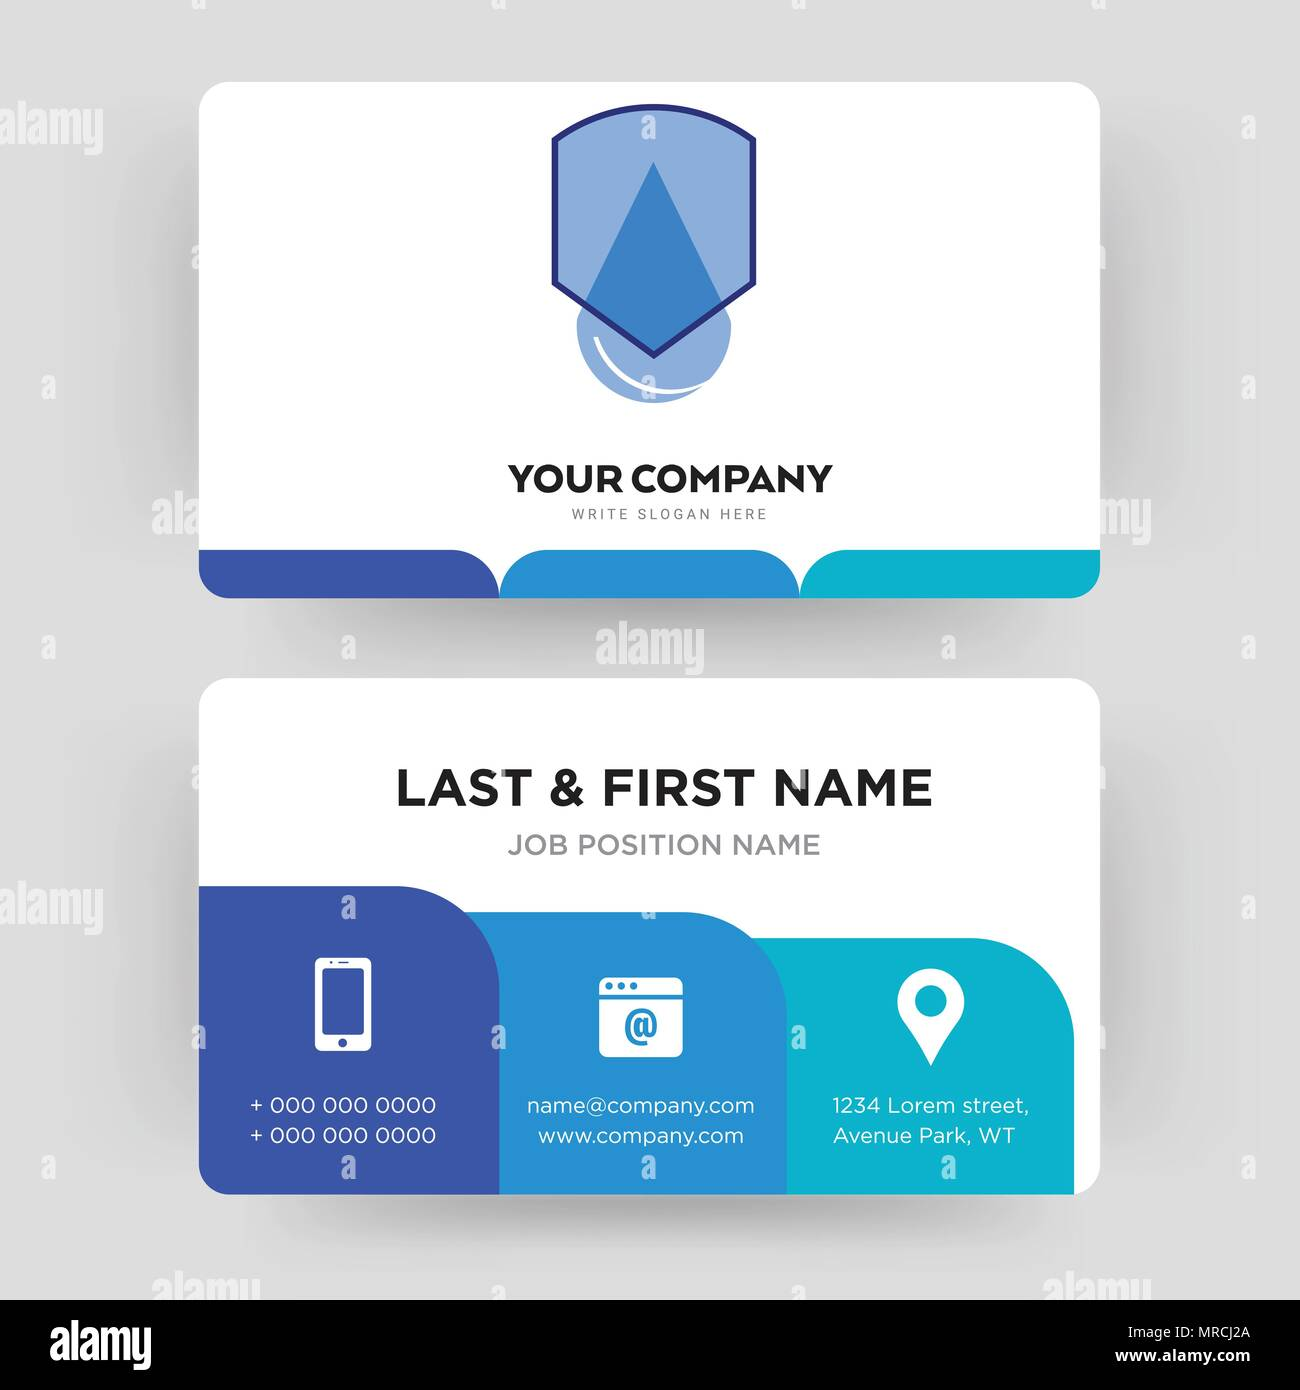 waterproof business card design template visiting for your company modern creative and clean identity card vector - Waterproof Business Cards